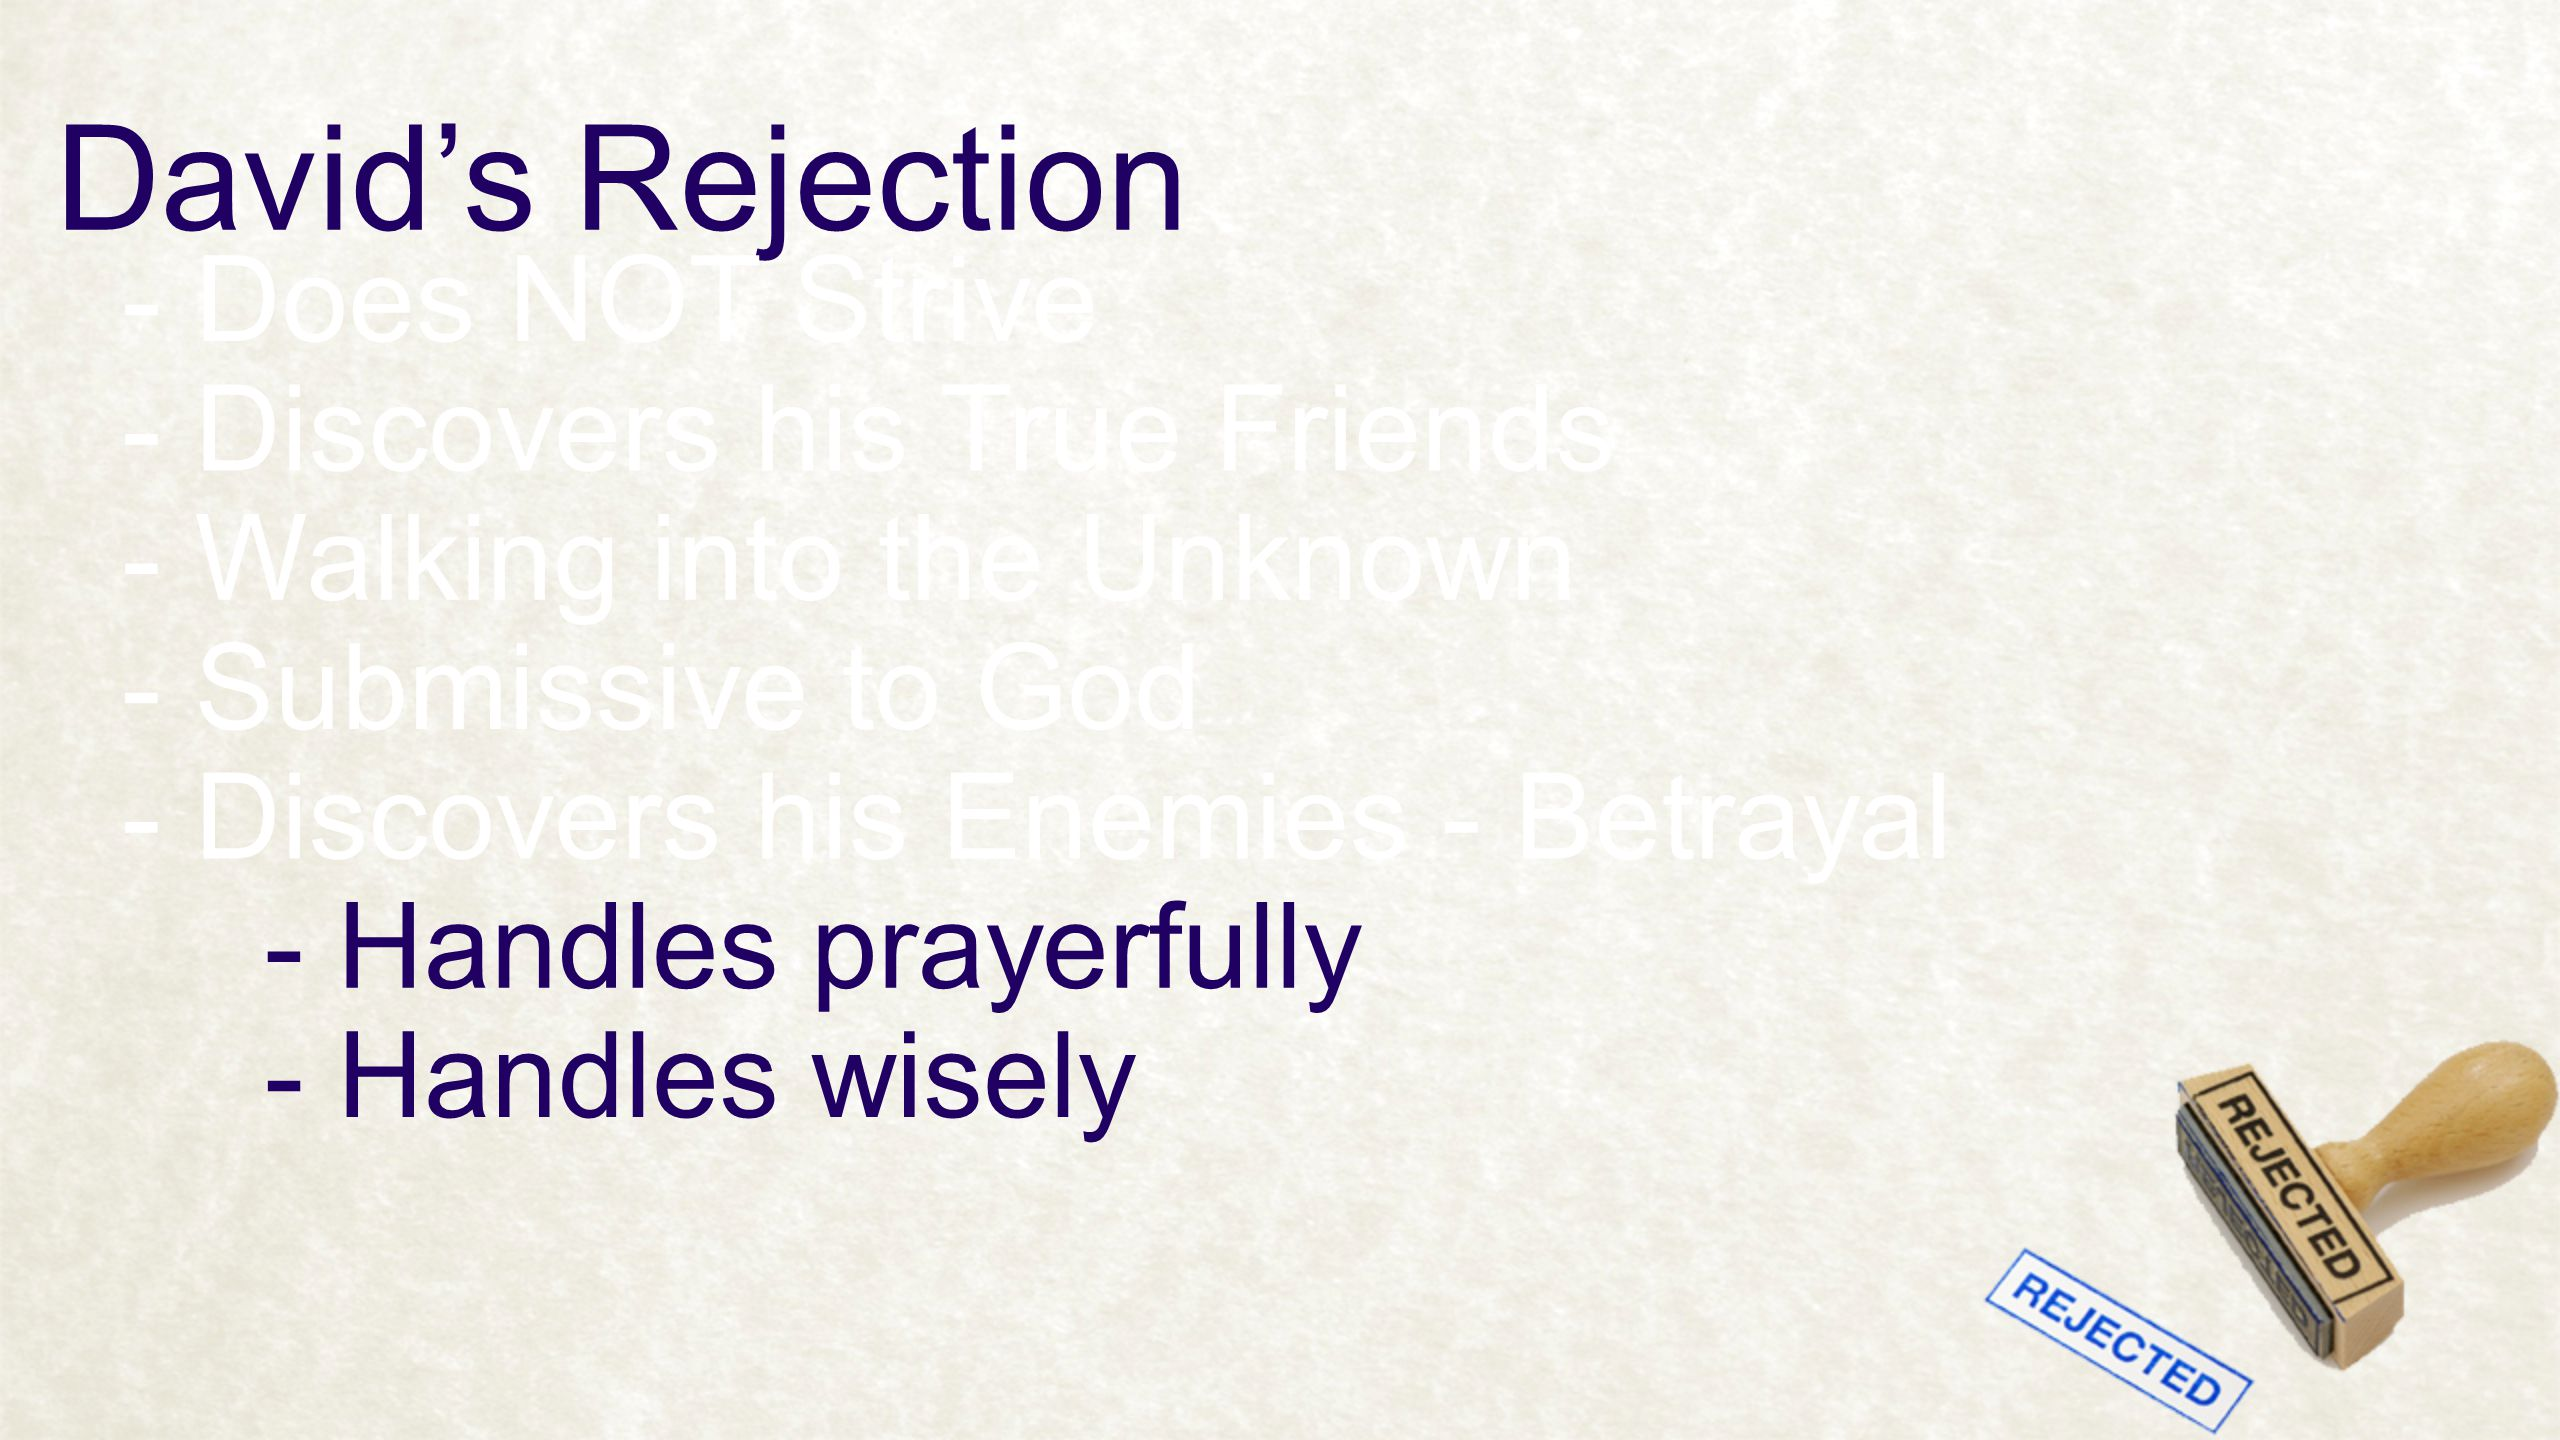 David's Rejection - Does NOT Strive - Discovers his True Friends - Walking into the Unknown - Discovers his Enemies - Betrayal - Handles prayerfully - Handles wisely - Submissive to God